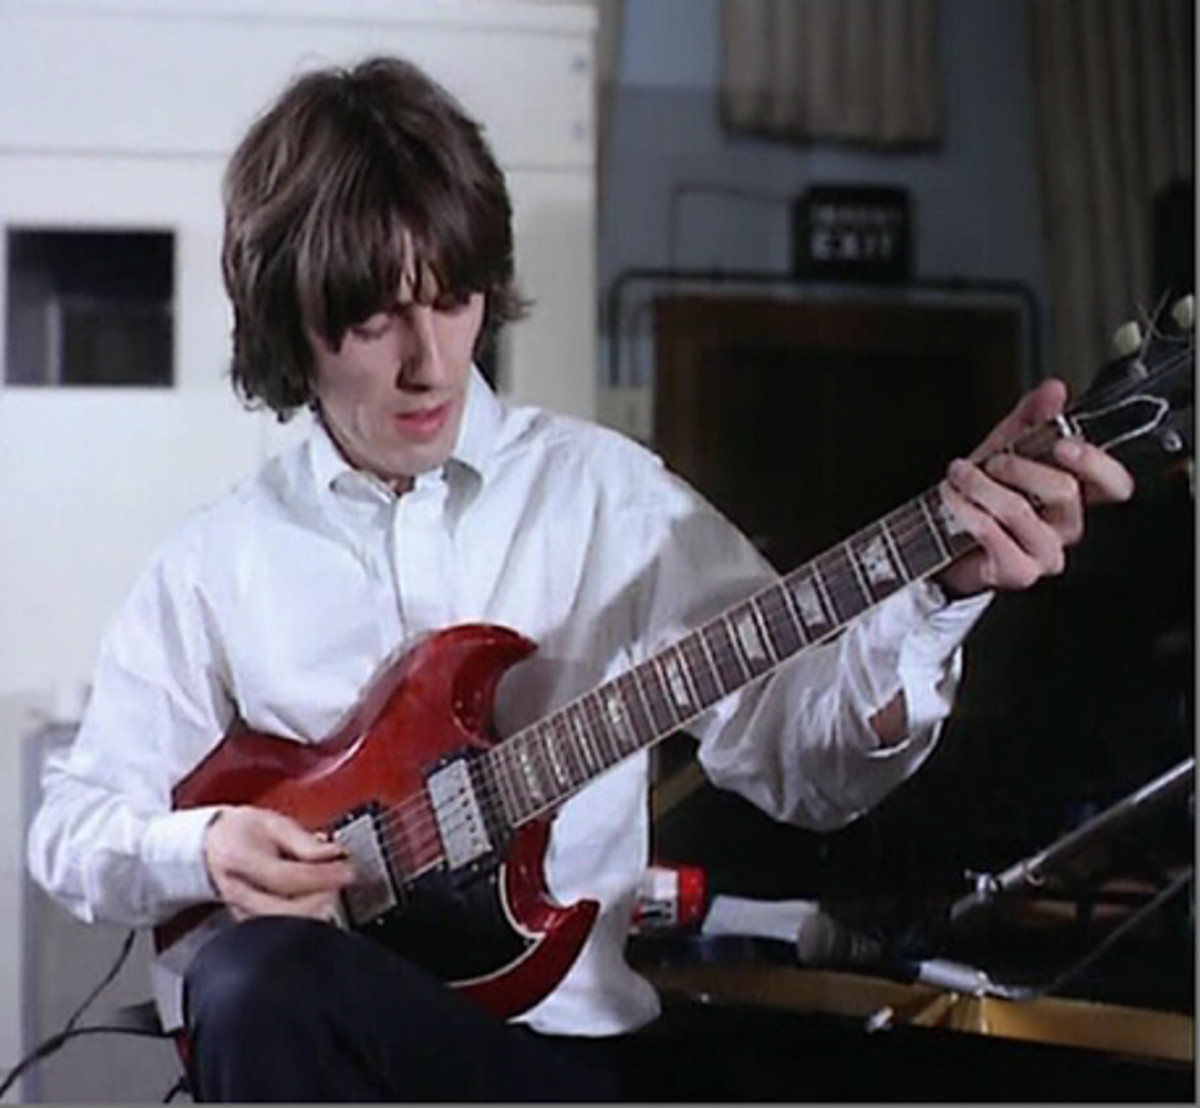 At the time George Harrison was probably the single most famous guitarist in the world.